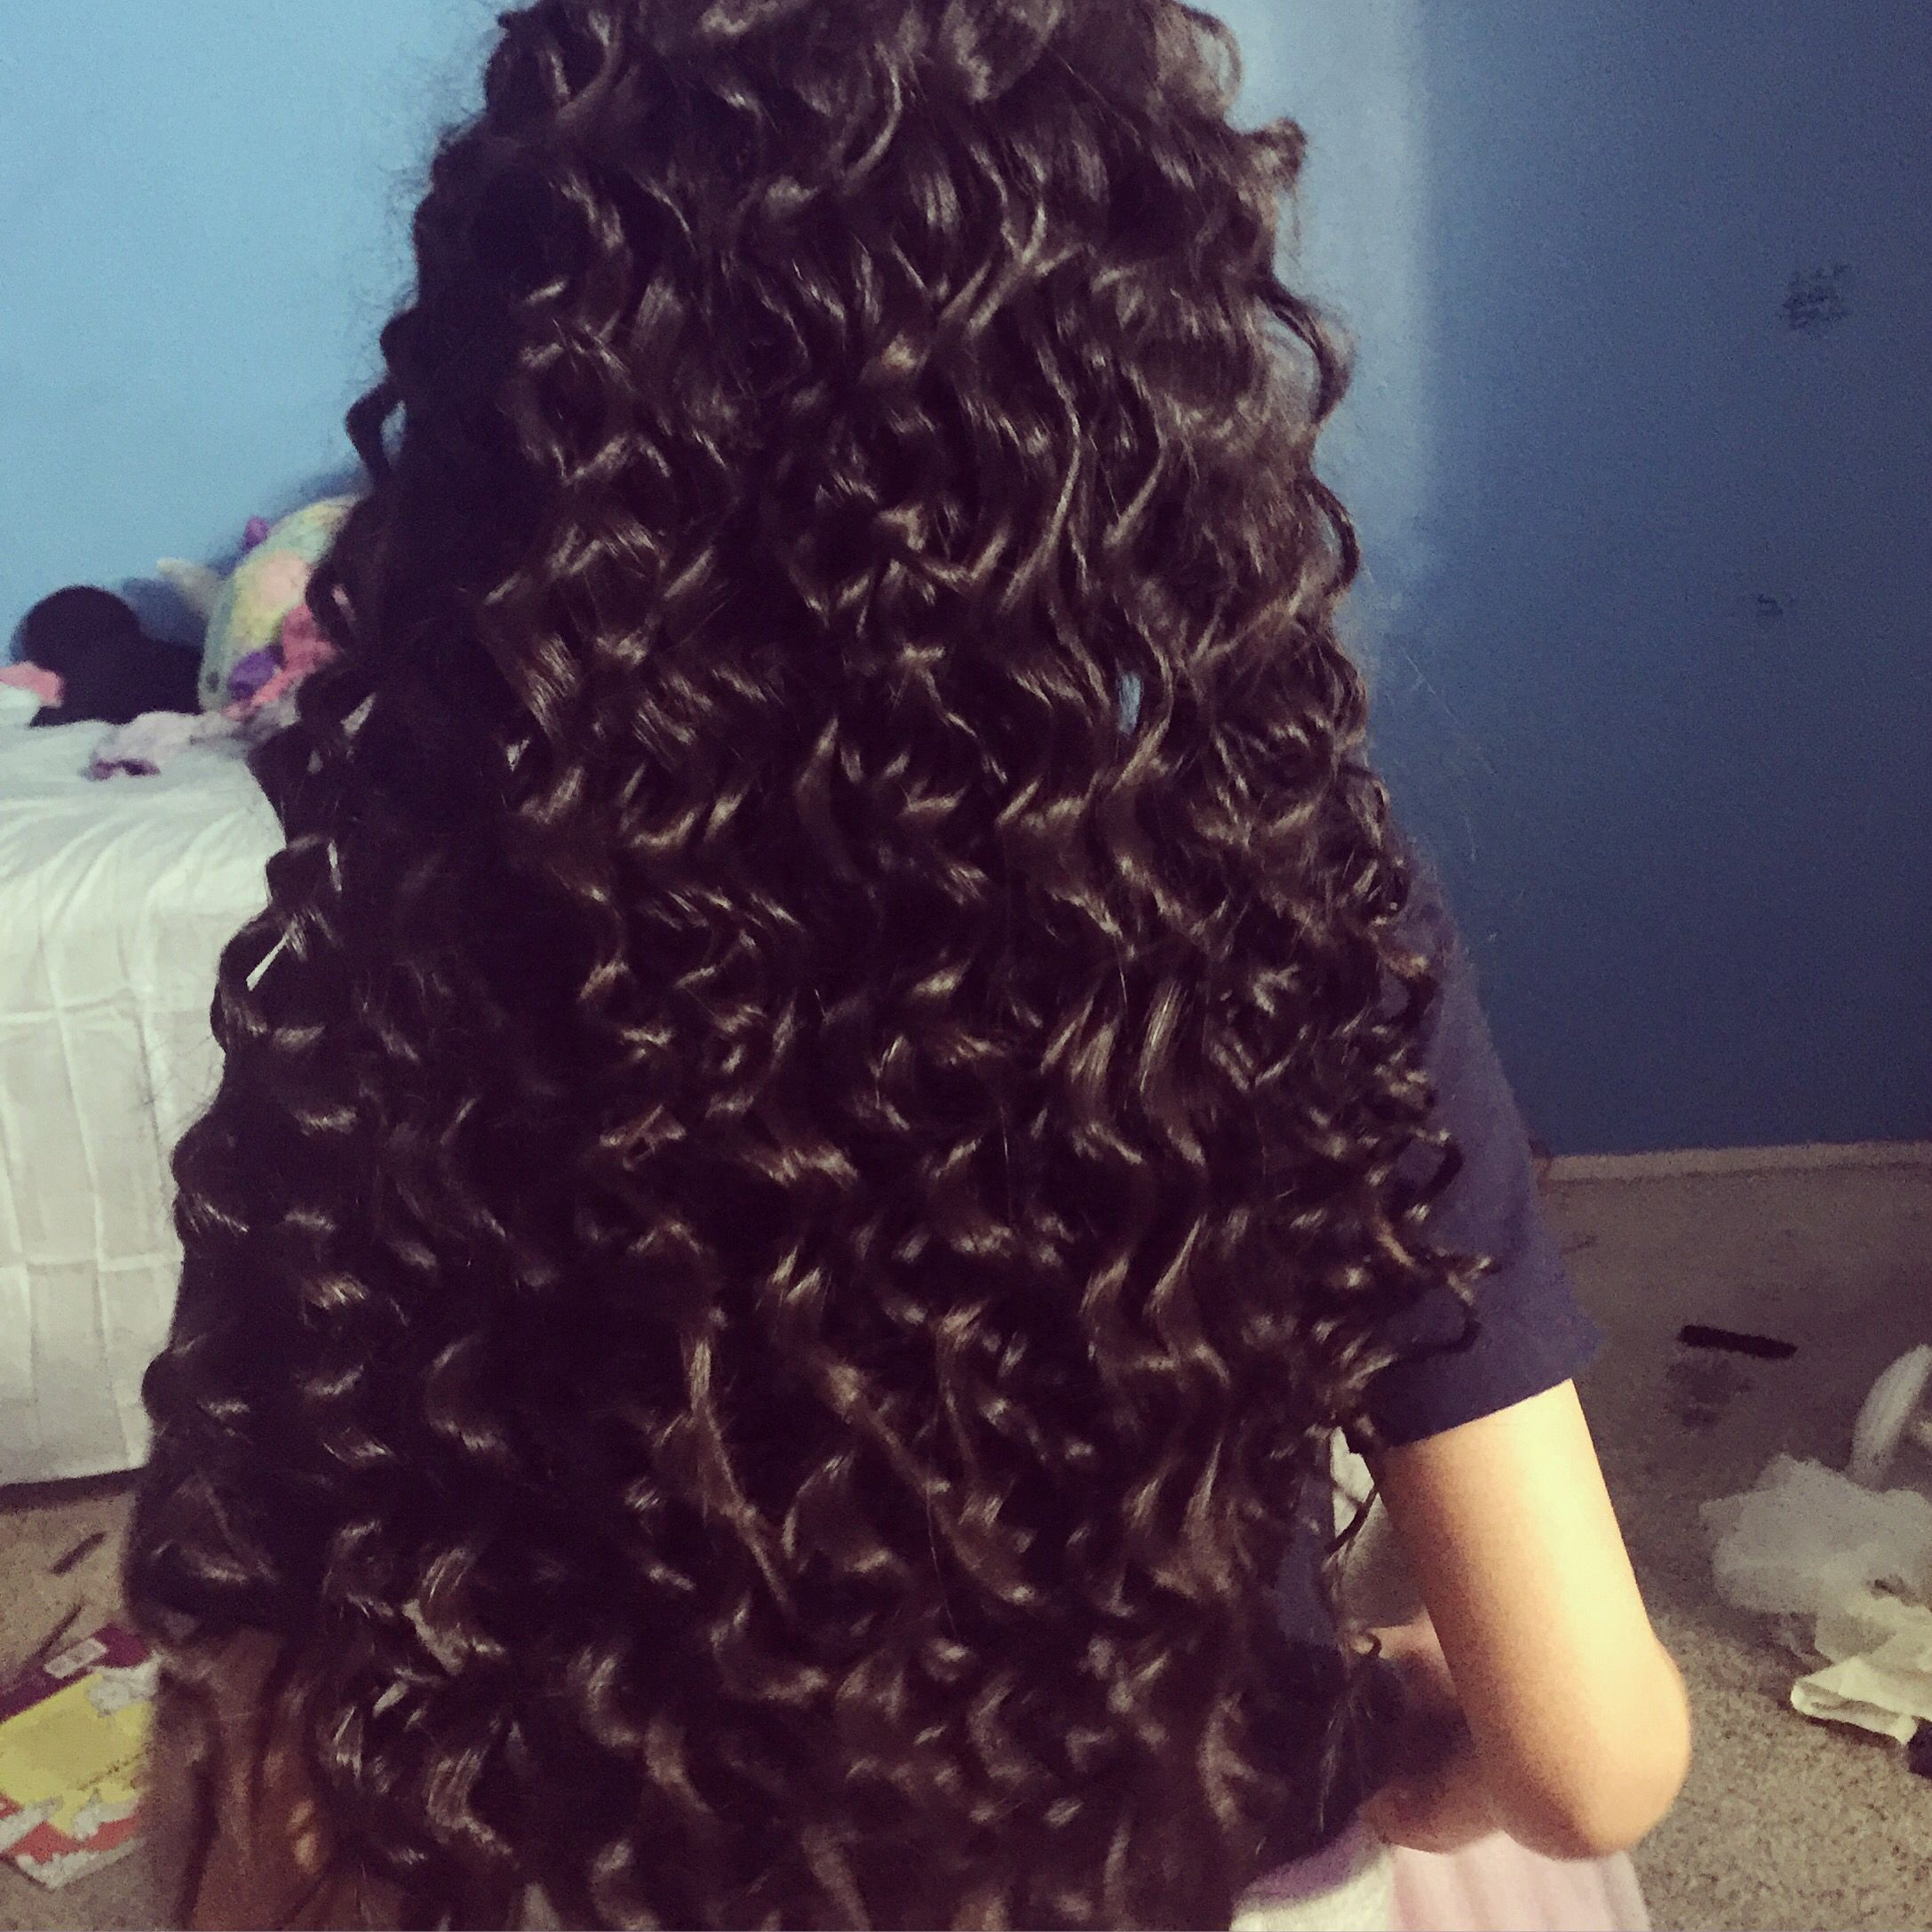 curled with pencil and daly iron super cute curls for short or